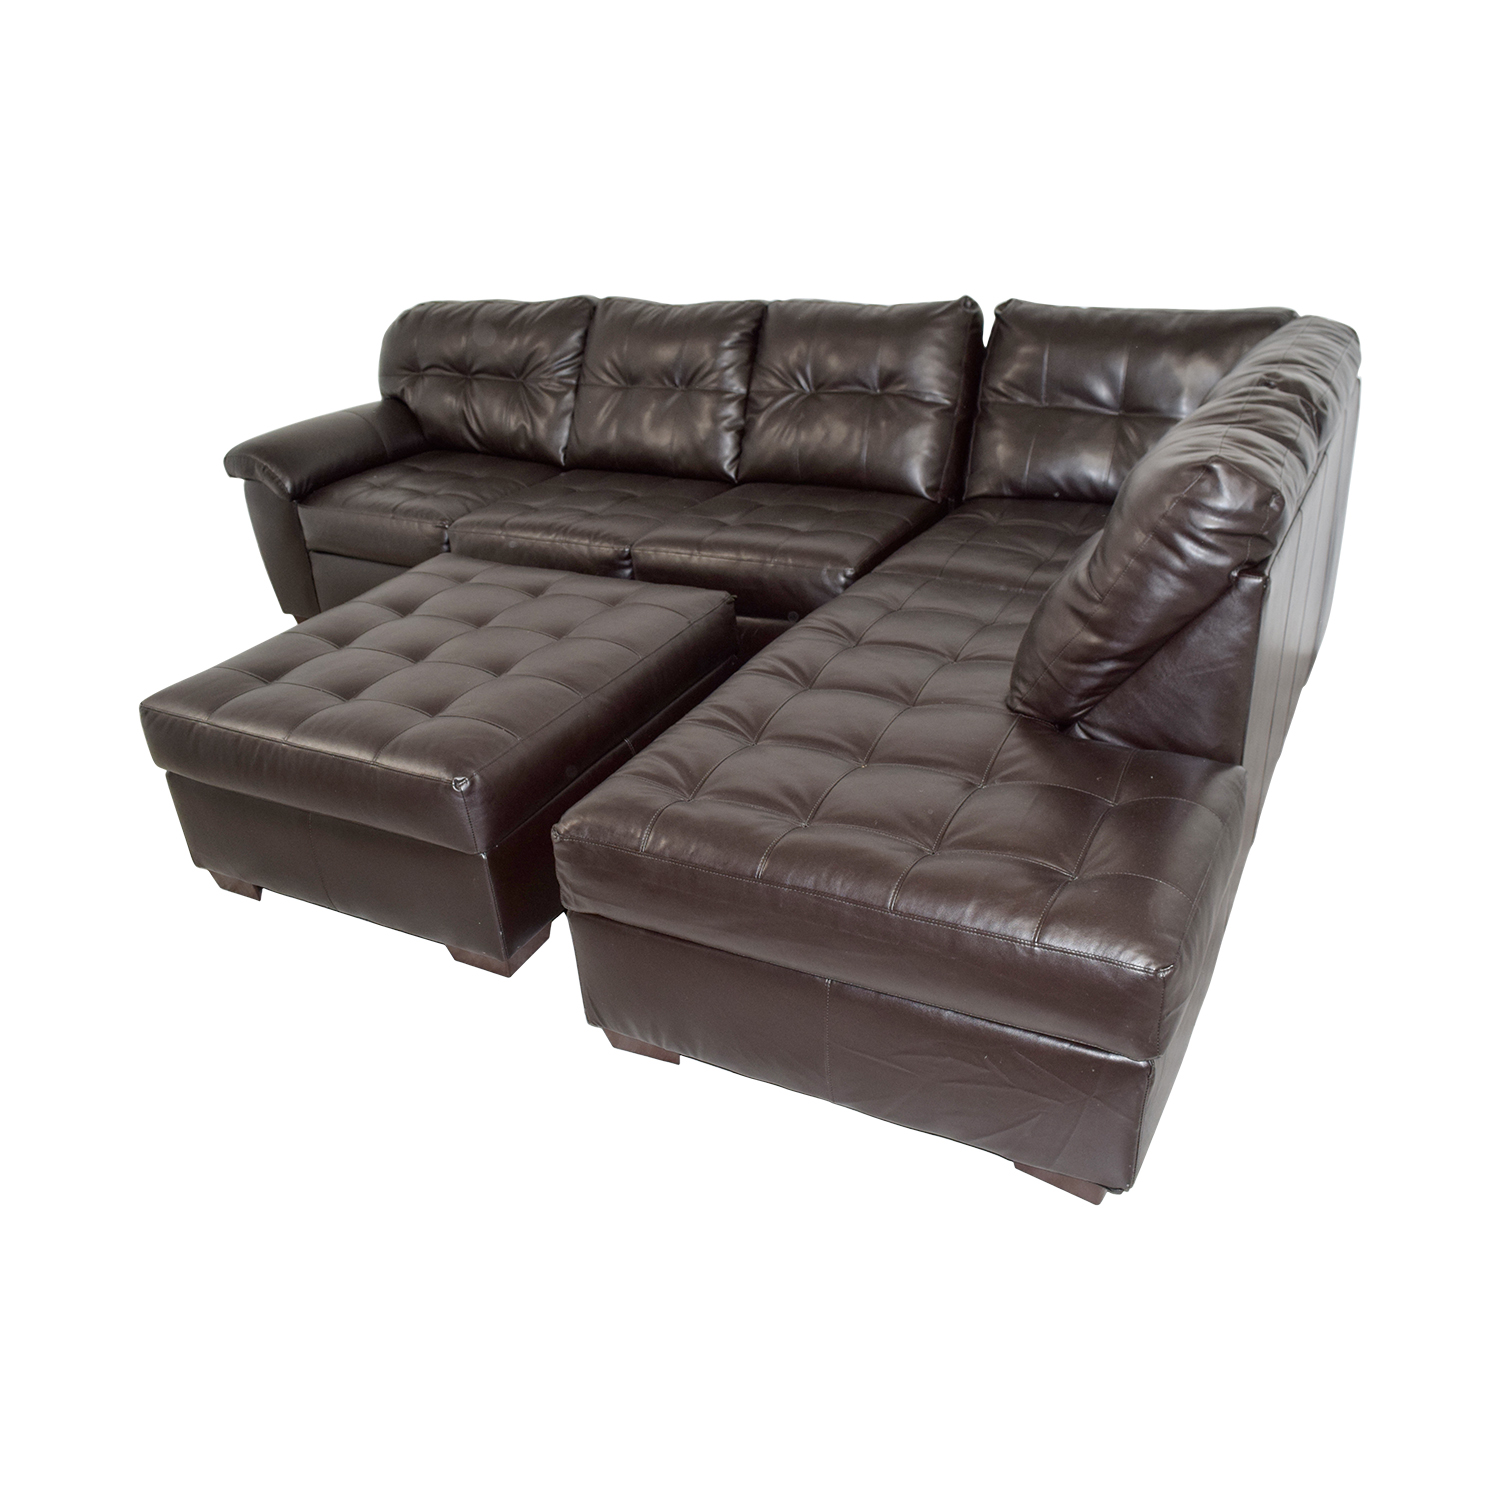 shop Simmons Simmons Brown Leather Sectional with Ottoman online